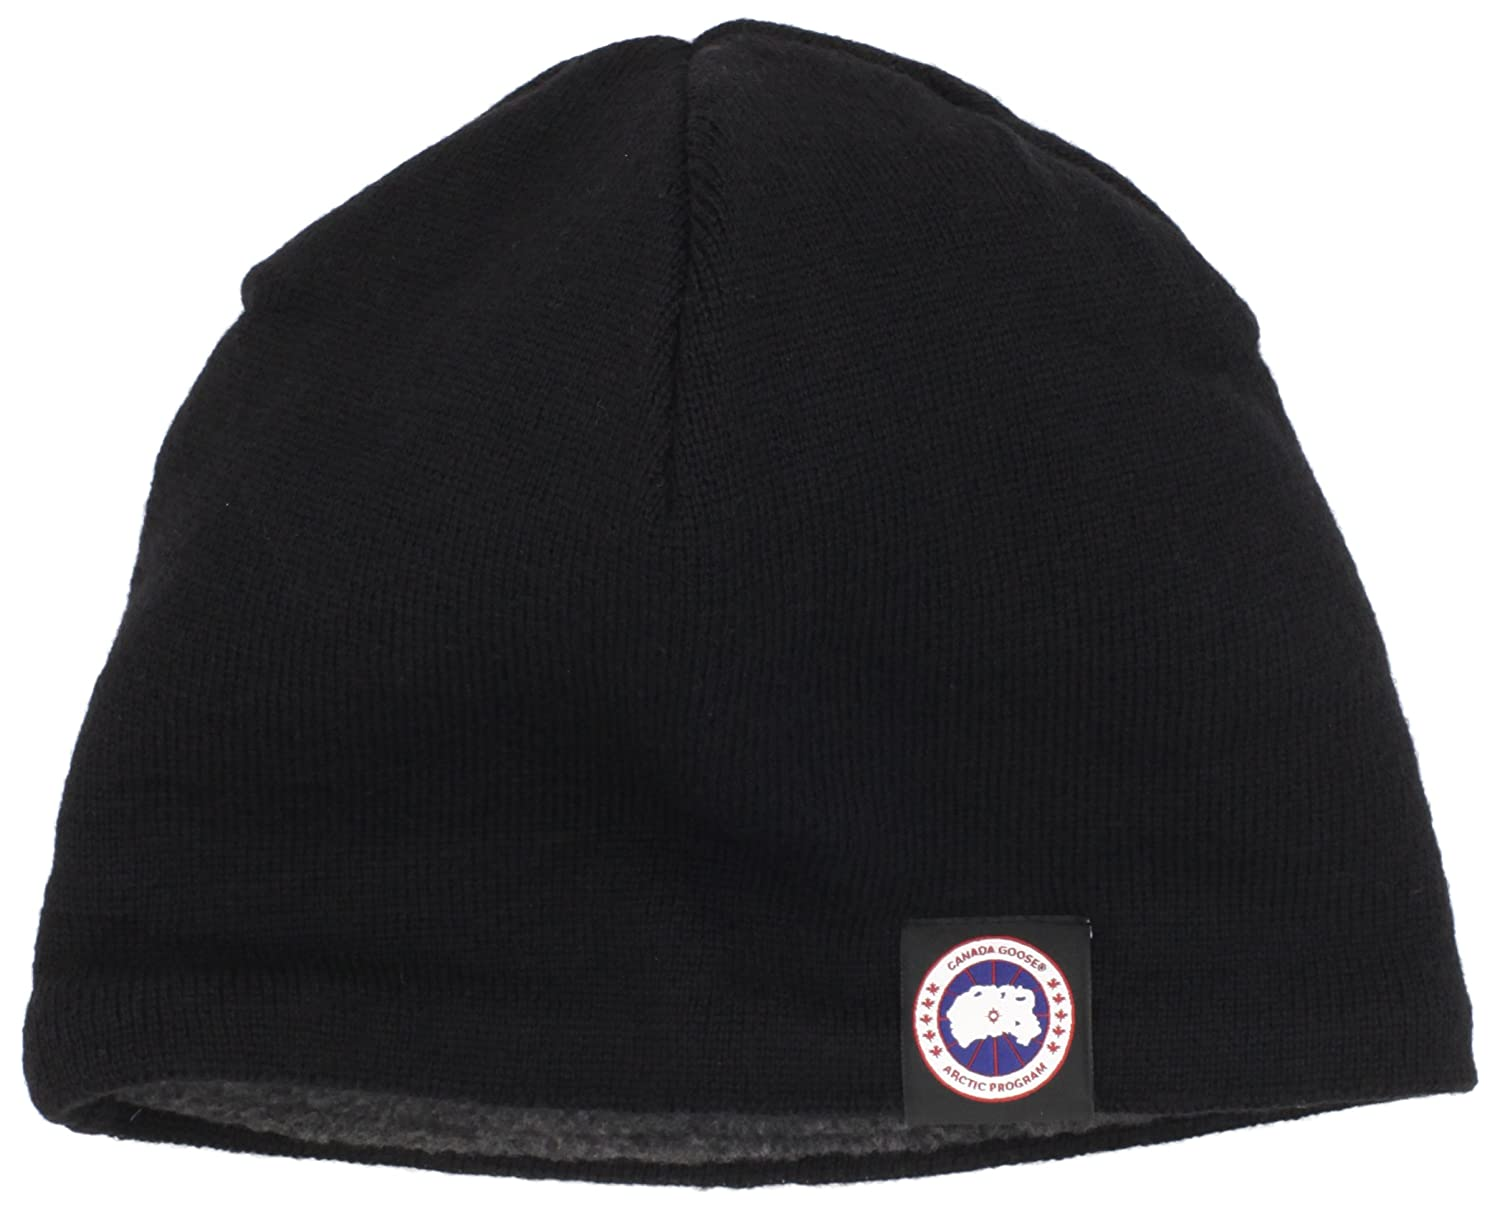 Canada Goose Men s Merino Wool Beanie Hat Black One Size  Amazon.ca  Sports    Outdoors c8619530915